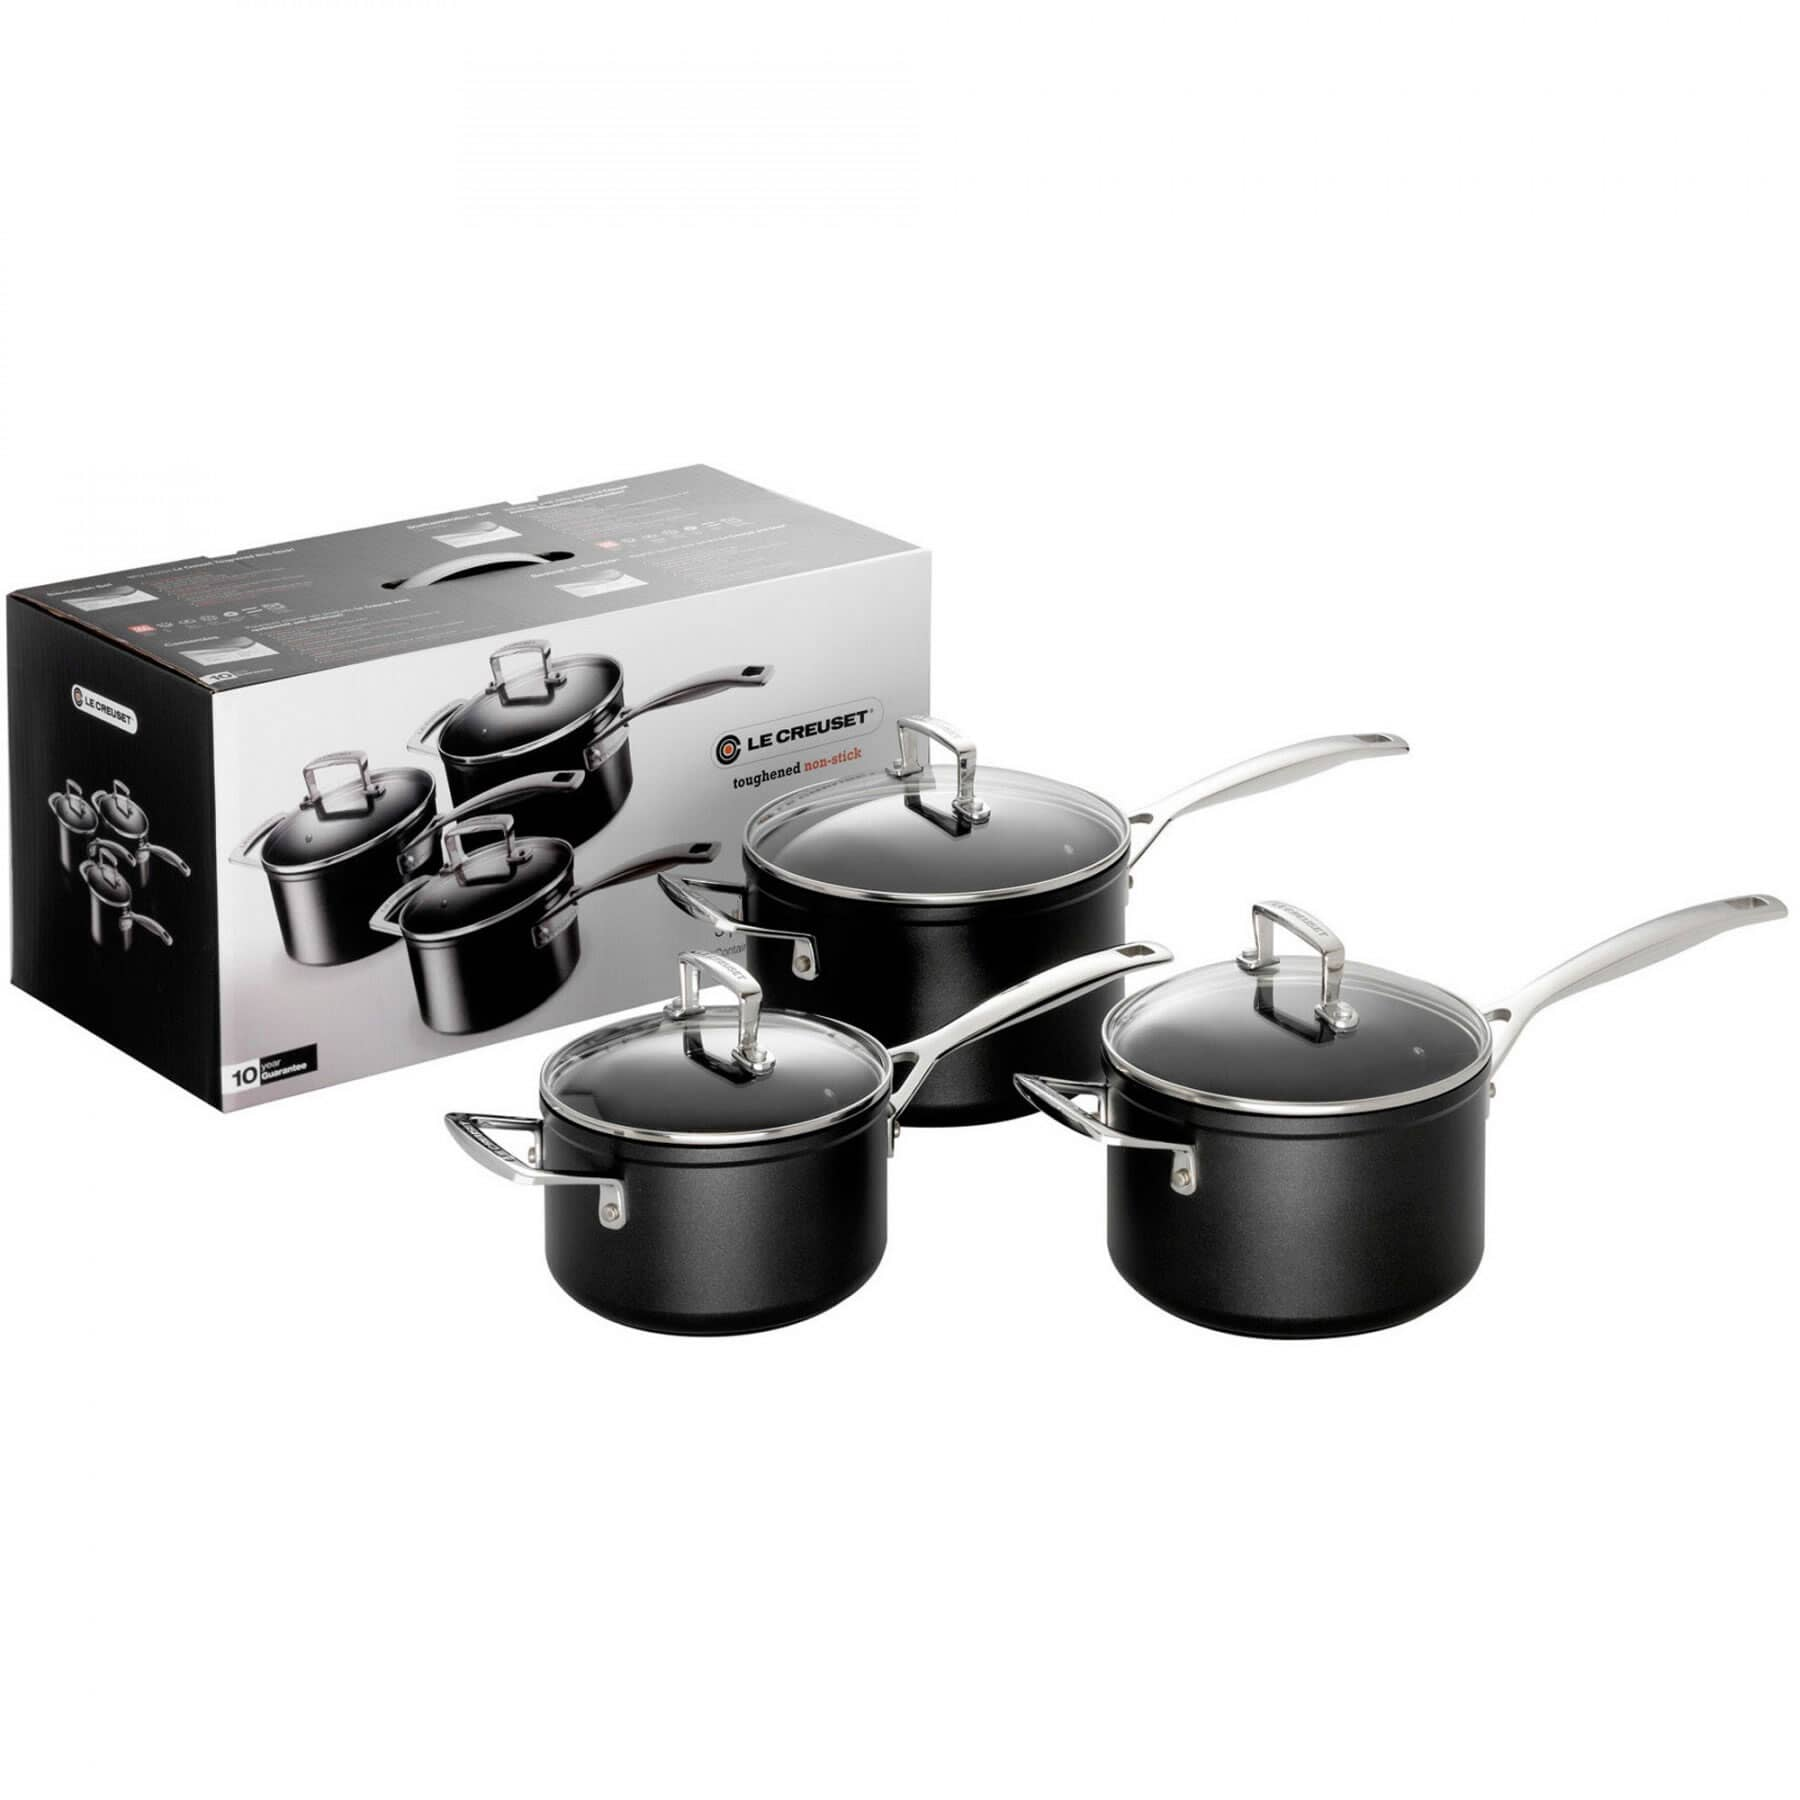 le creuset tns 3 piece saucepan set 962090000 ecookshop. Black Bedroom Furniture Sets. Home Design Ideas